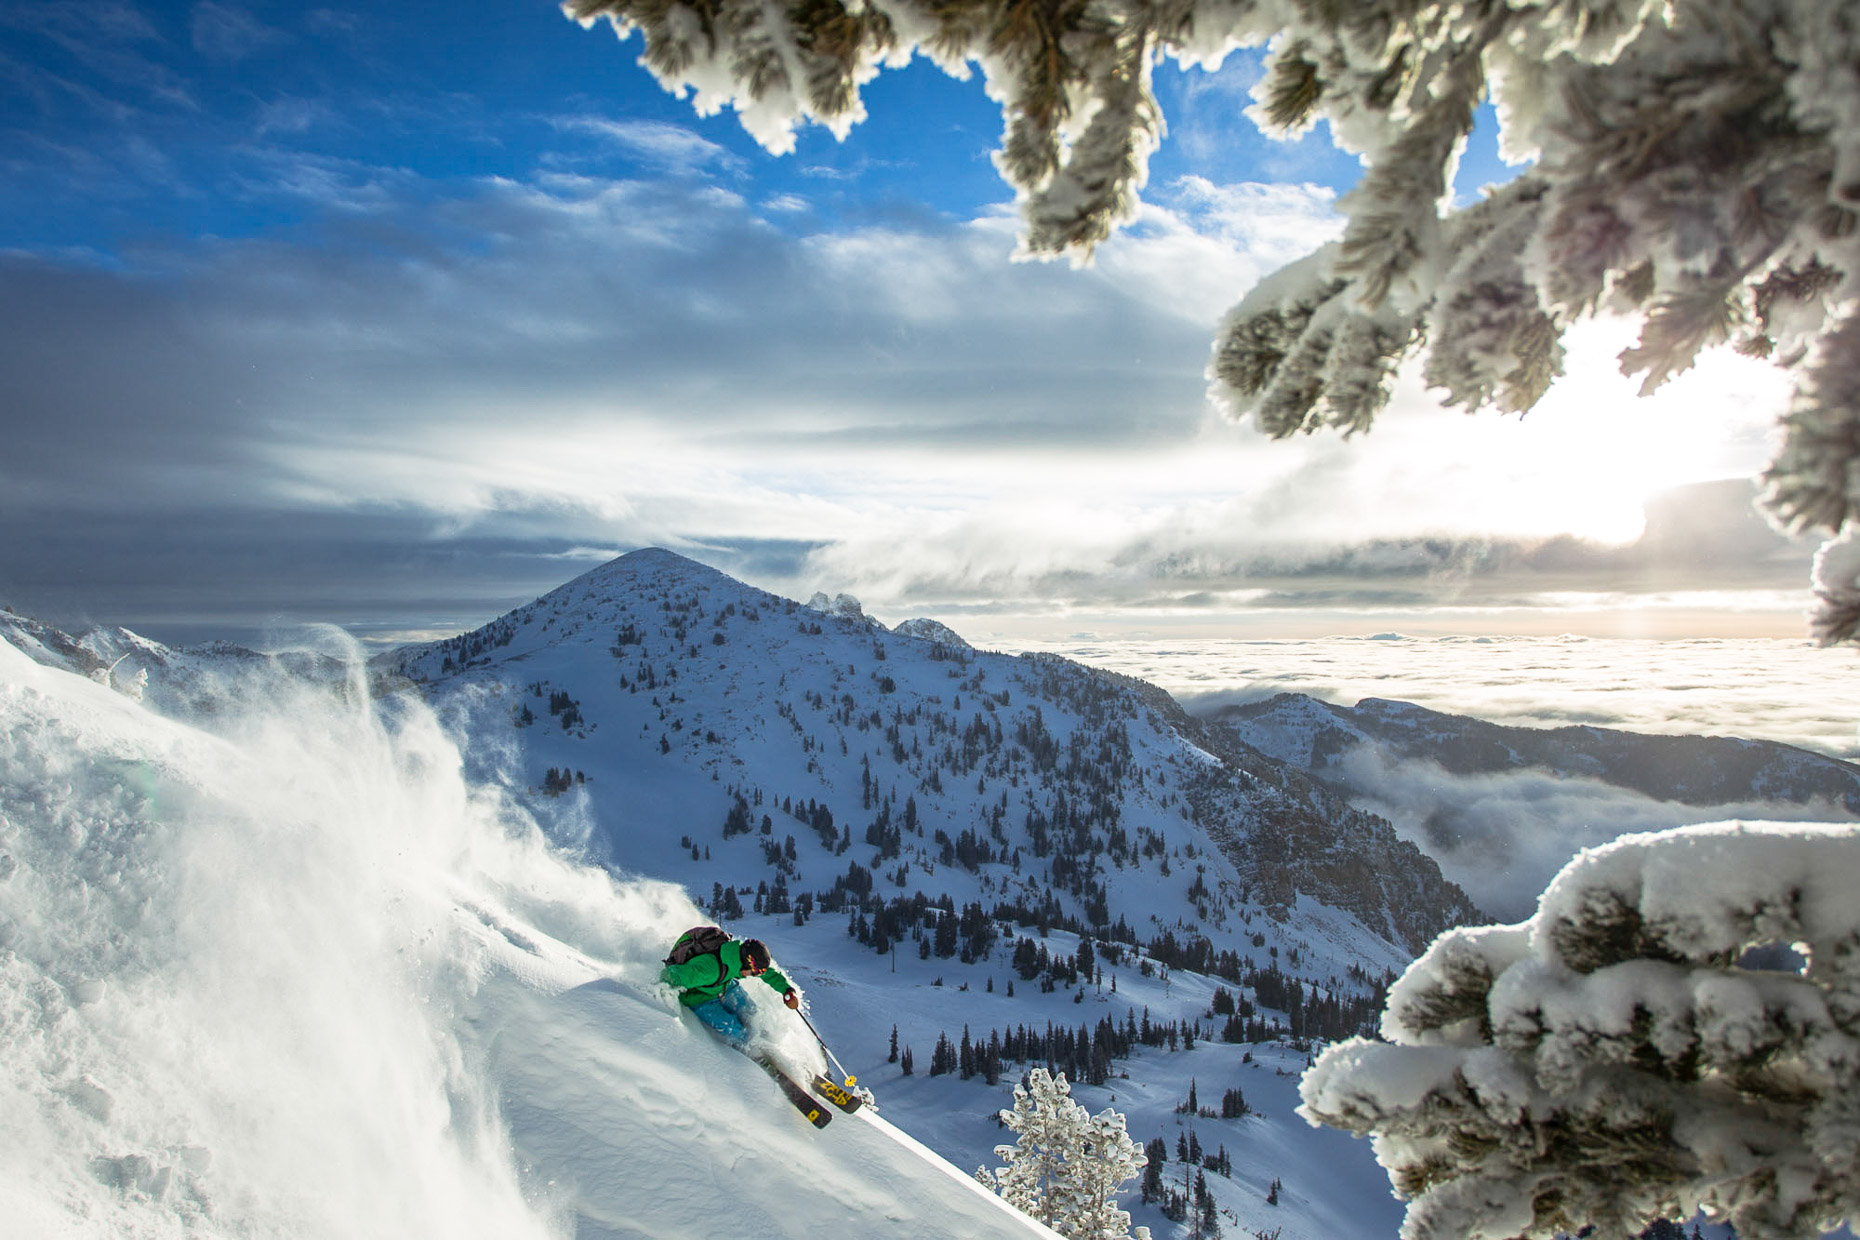 Drew Petersen at Snowbird